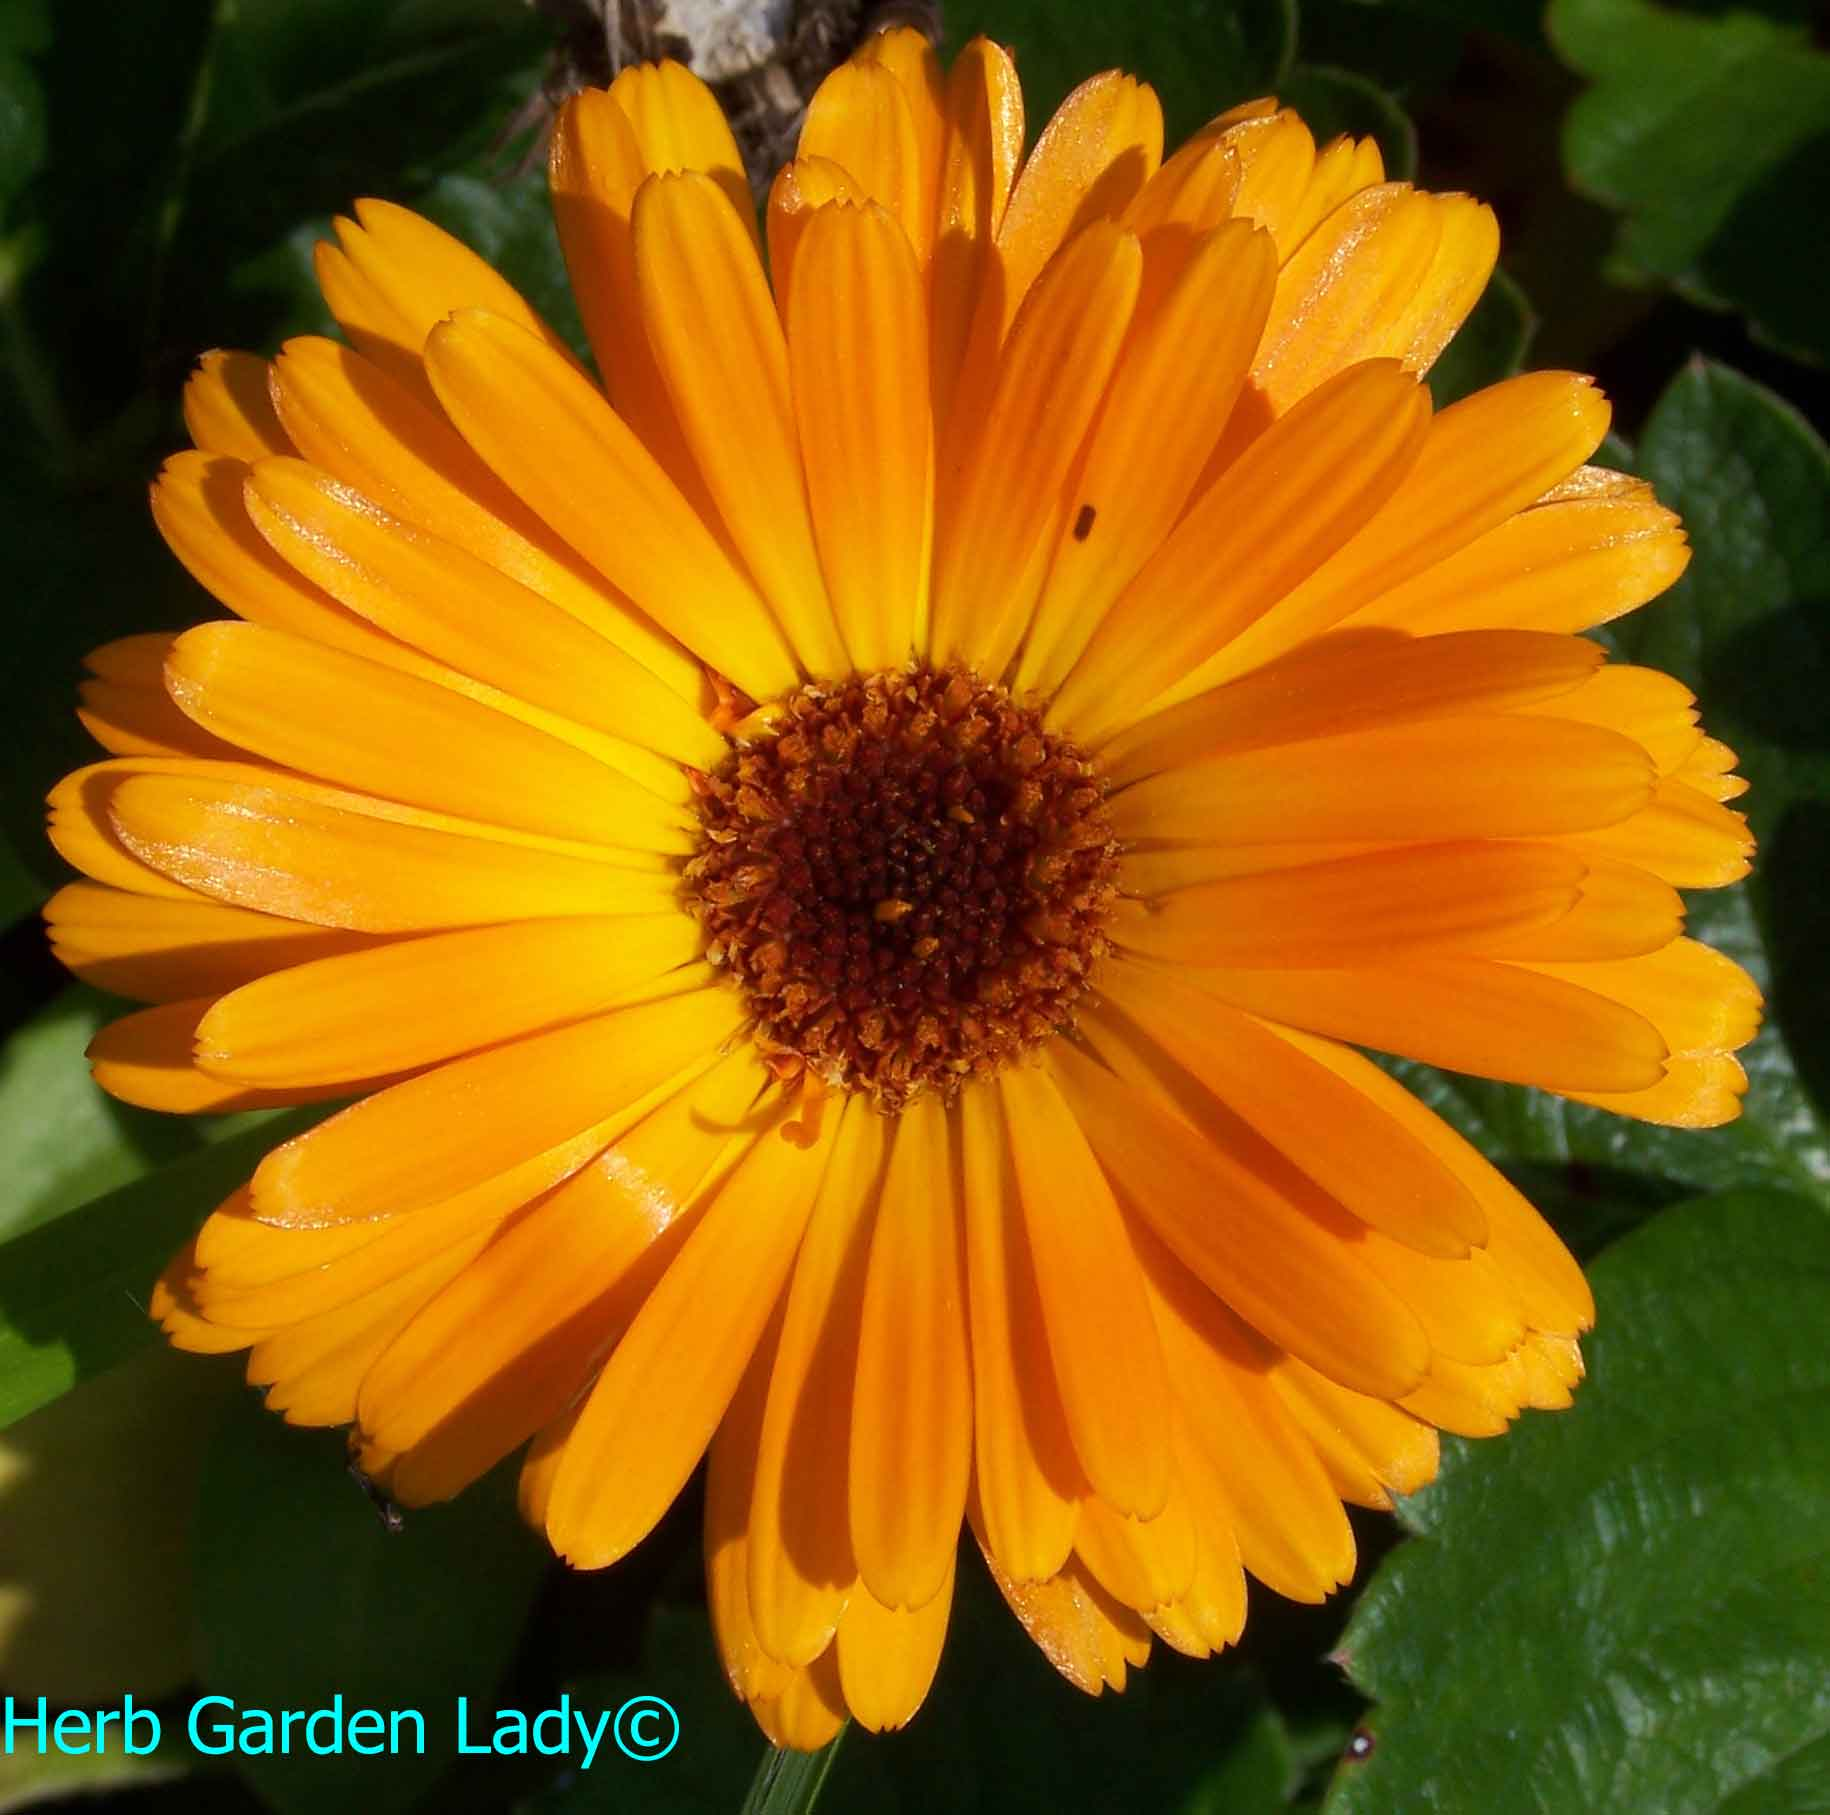 The calendula herb is a superb for dry skin and chapped lips